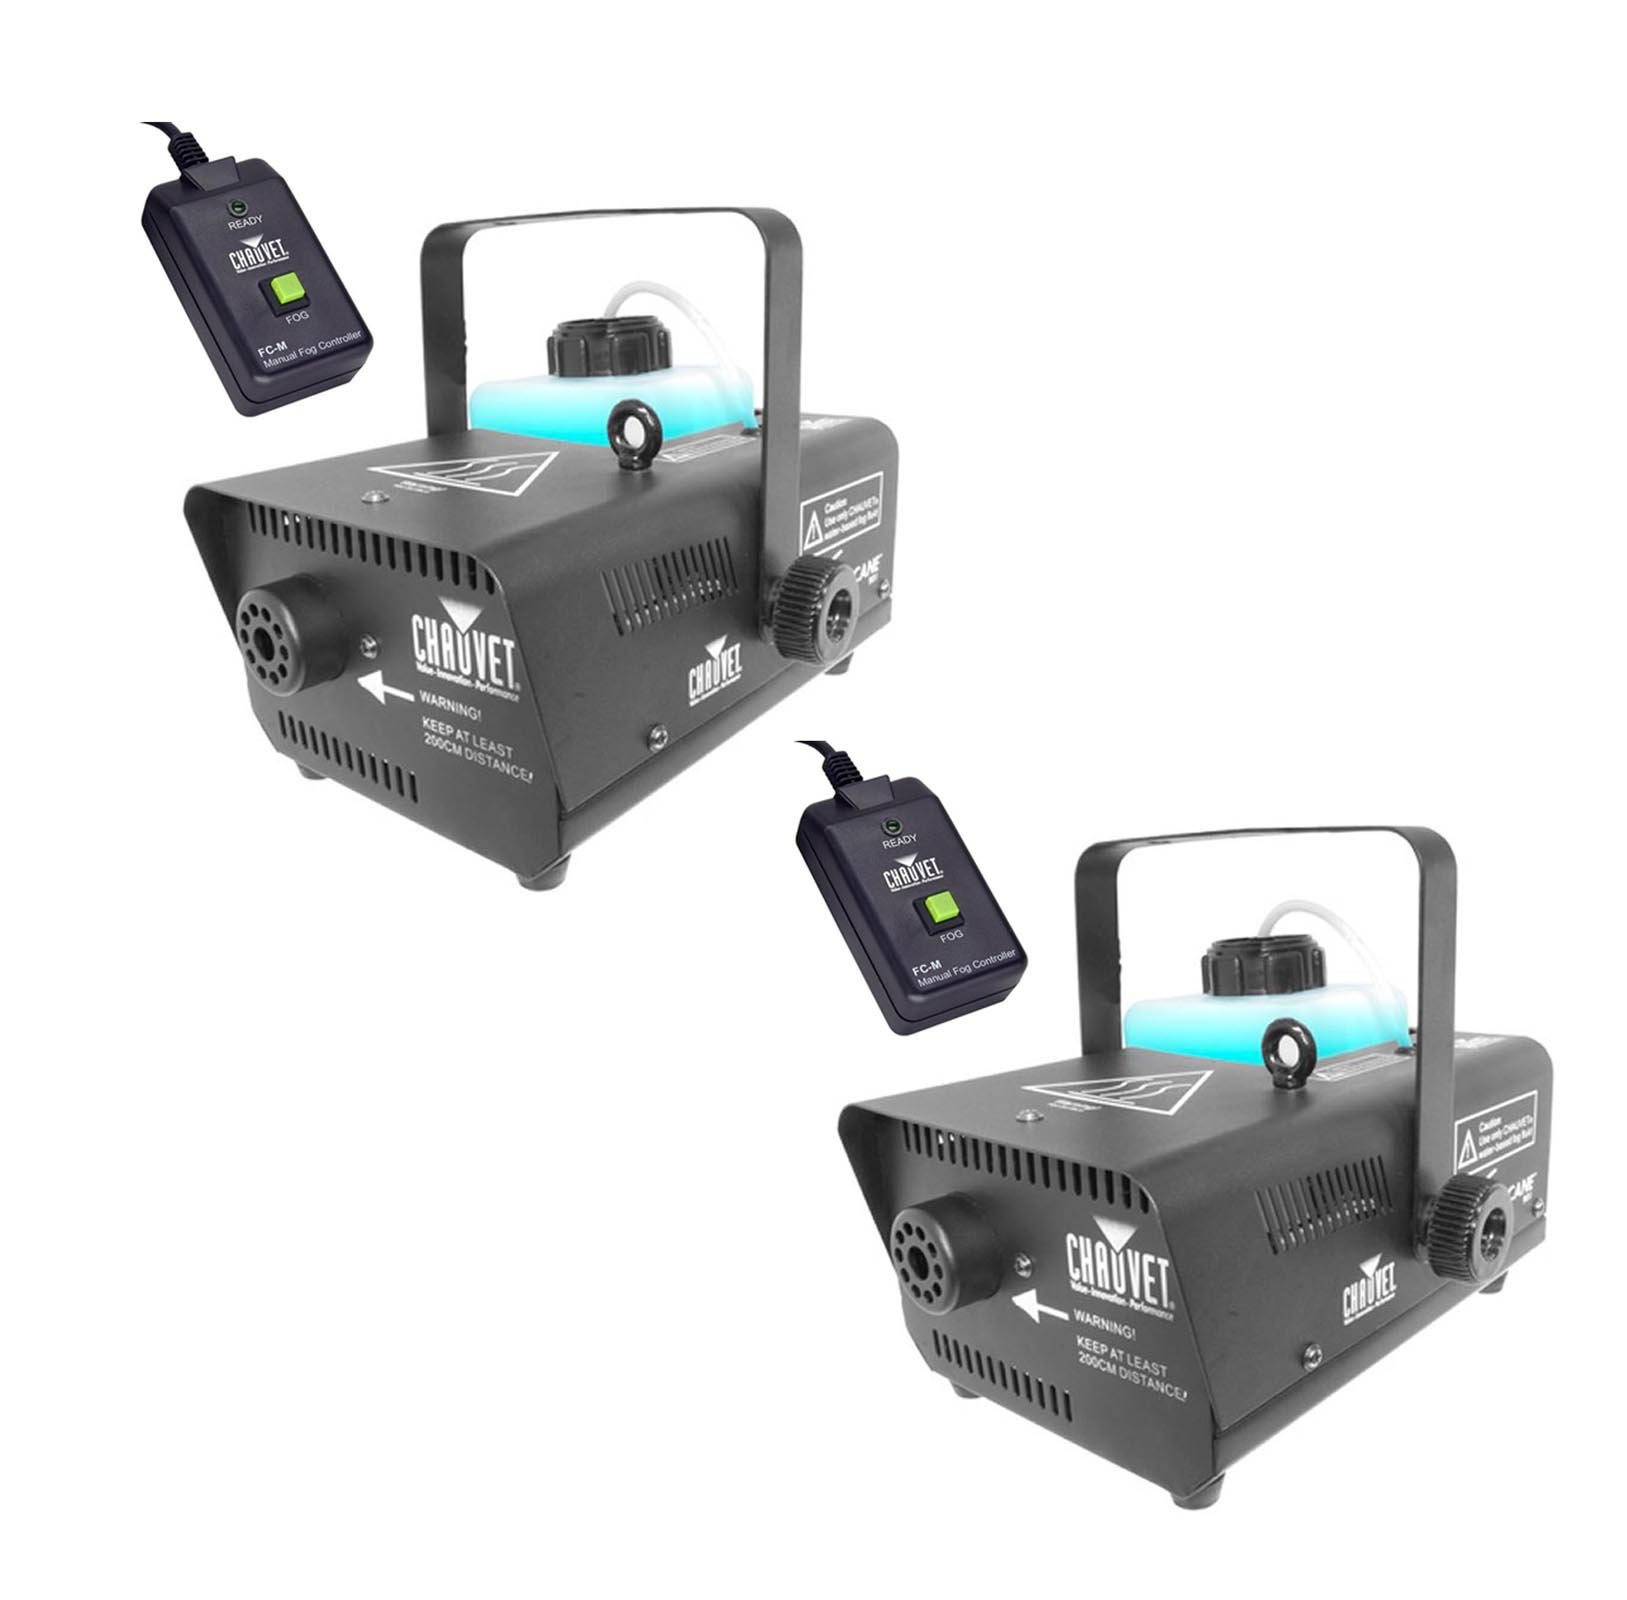 2 CHAUVET HURRICANE H-901 DJ Water-Based Smoke Fog Machines w/Wired Remote H901 by Chauvet DJ